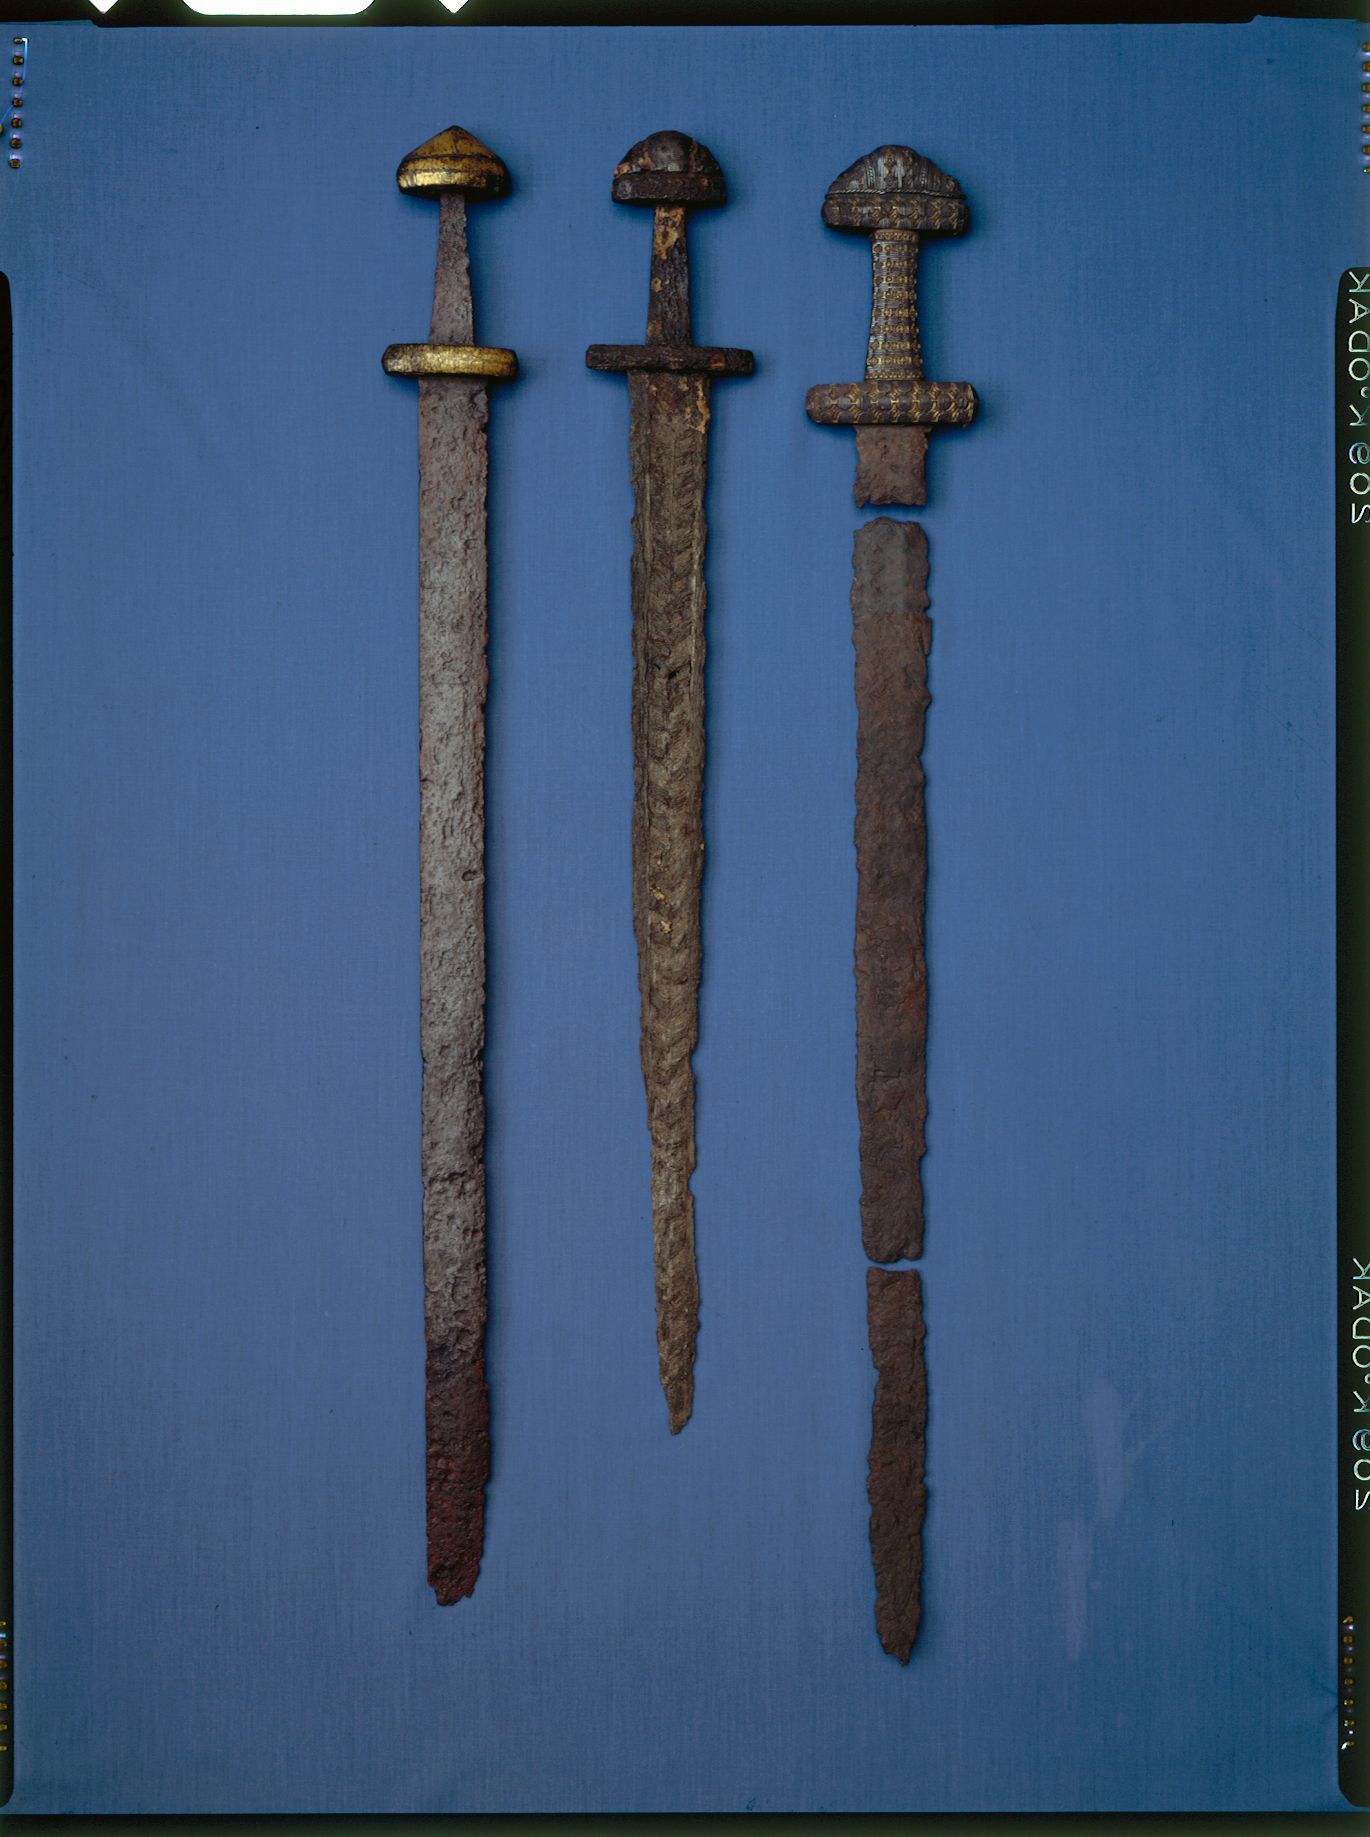 Double-edged Iron Age swords from Scandinavia